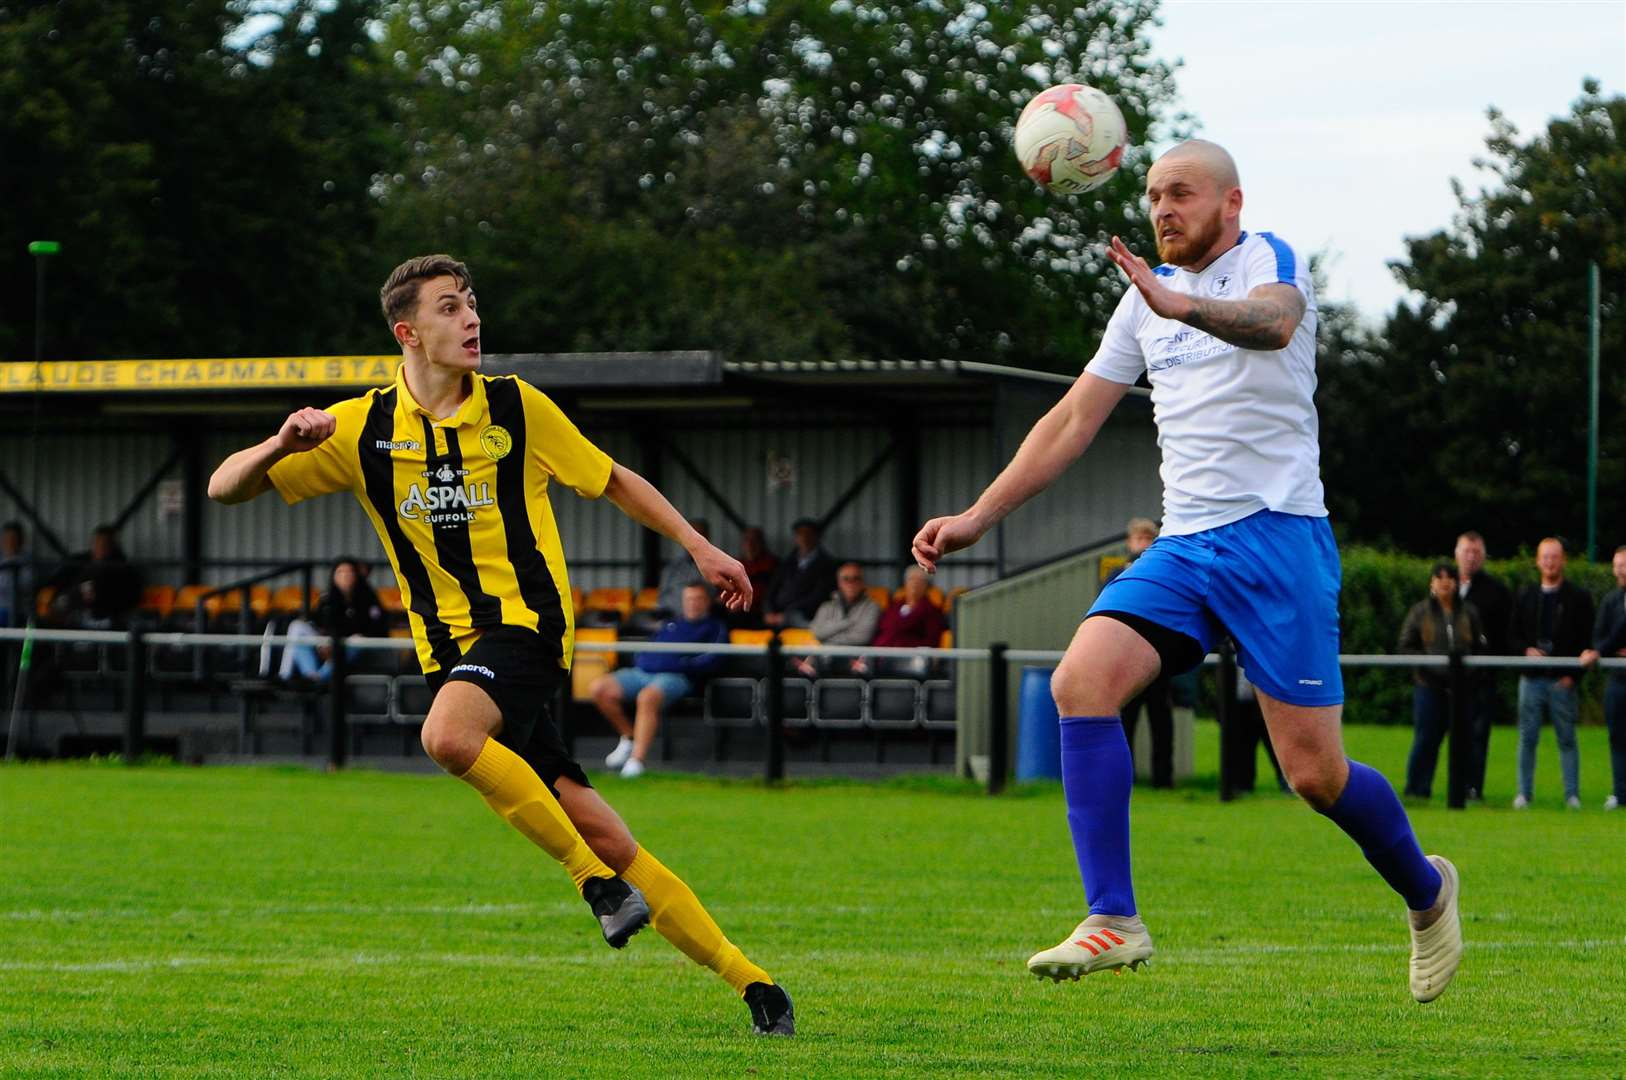 Debenham, Suffolk, 05/09/2020..Football action from Debenham LC vs Fakenham Town FC - Will Aldis..Picture: Mark Bullimore Photography. (41983169)